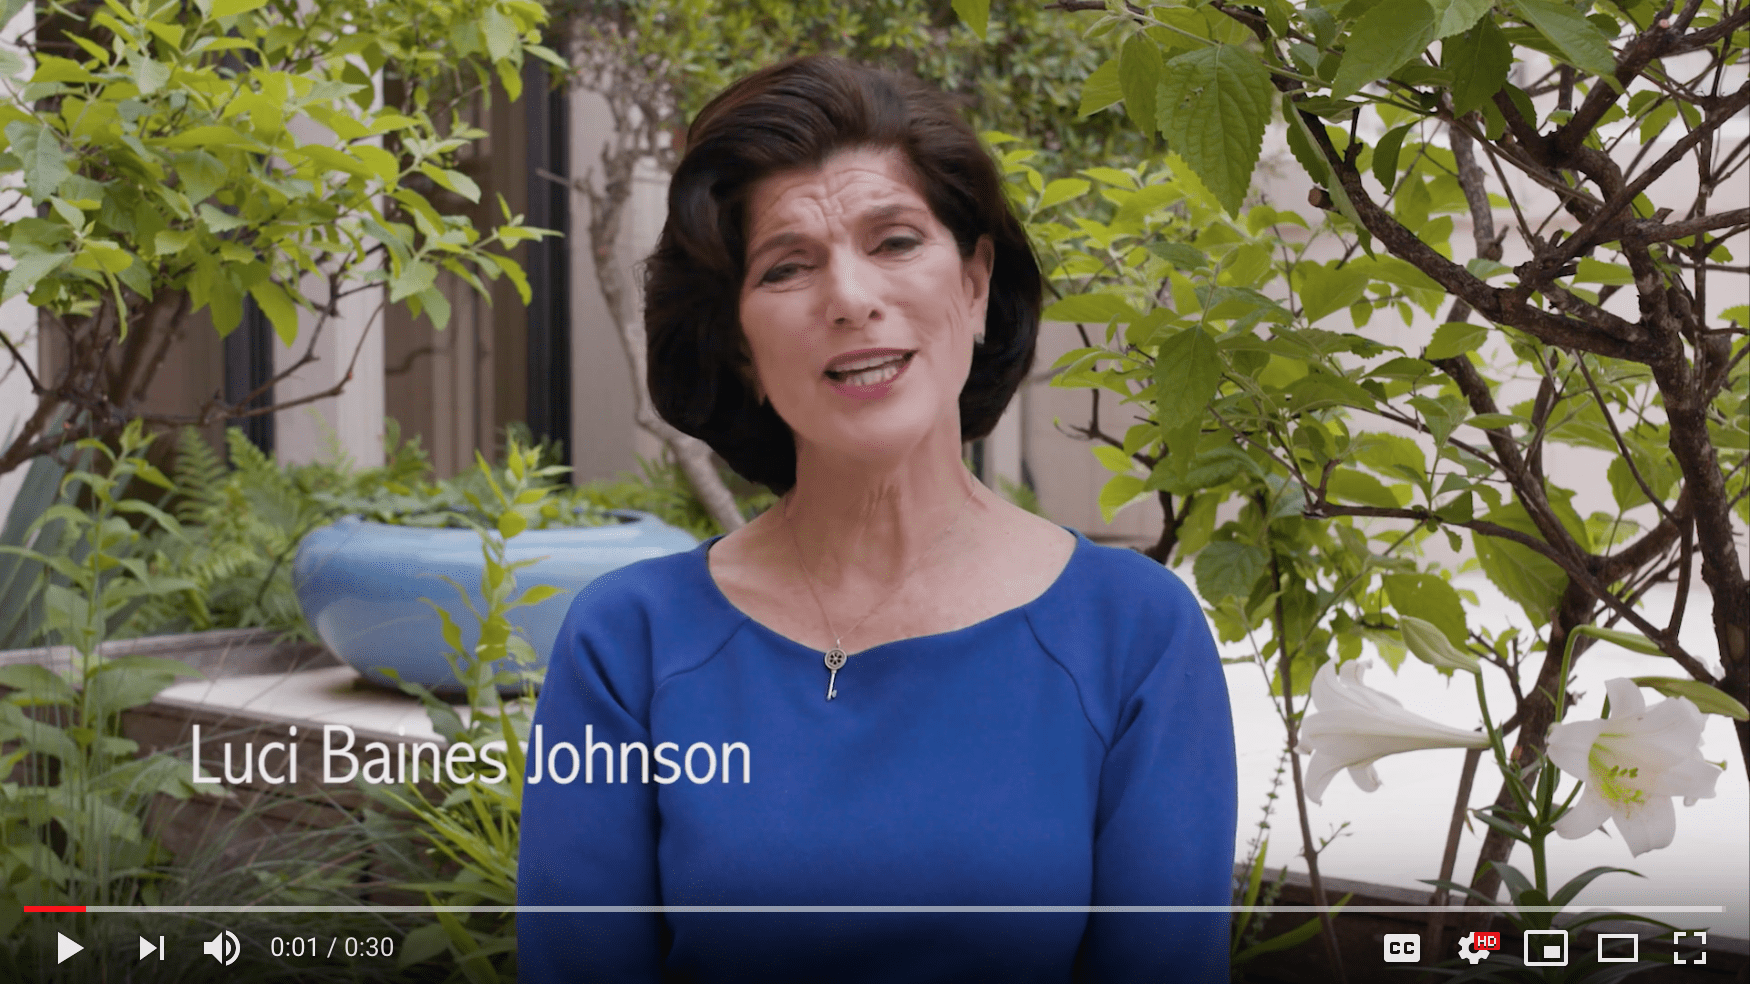 Luci Baines Johnson pledges to plant smart